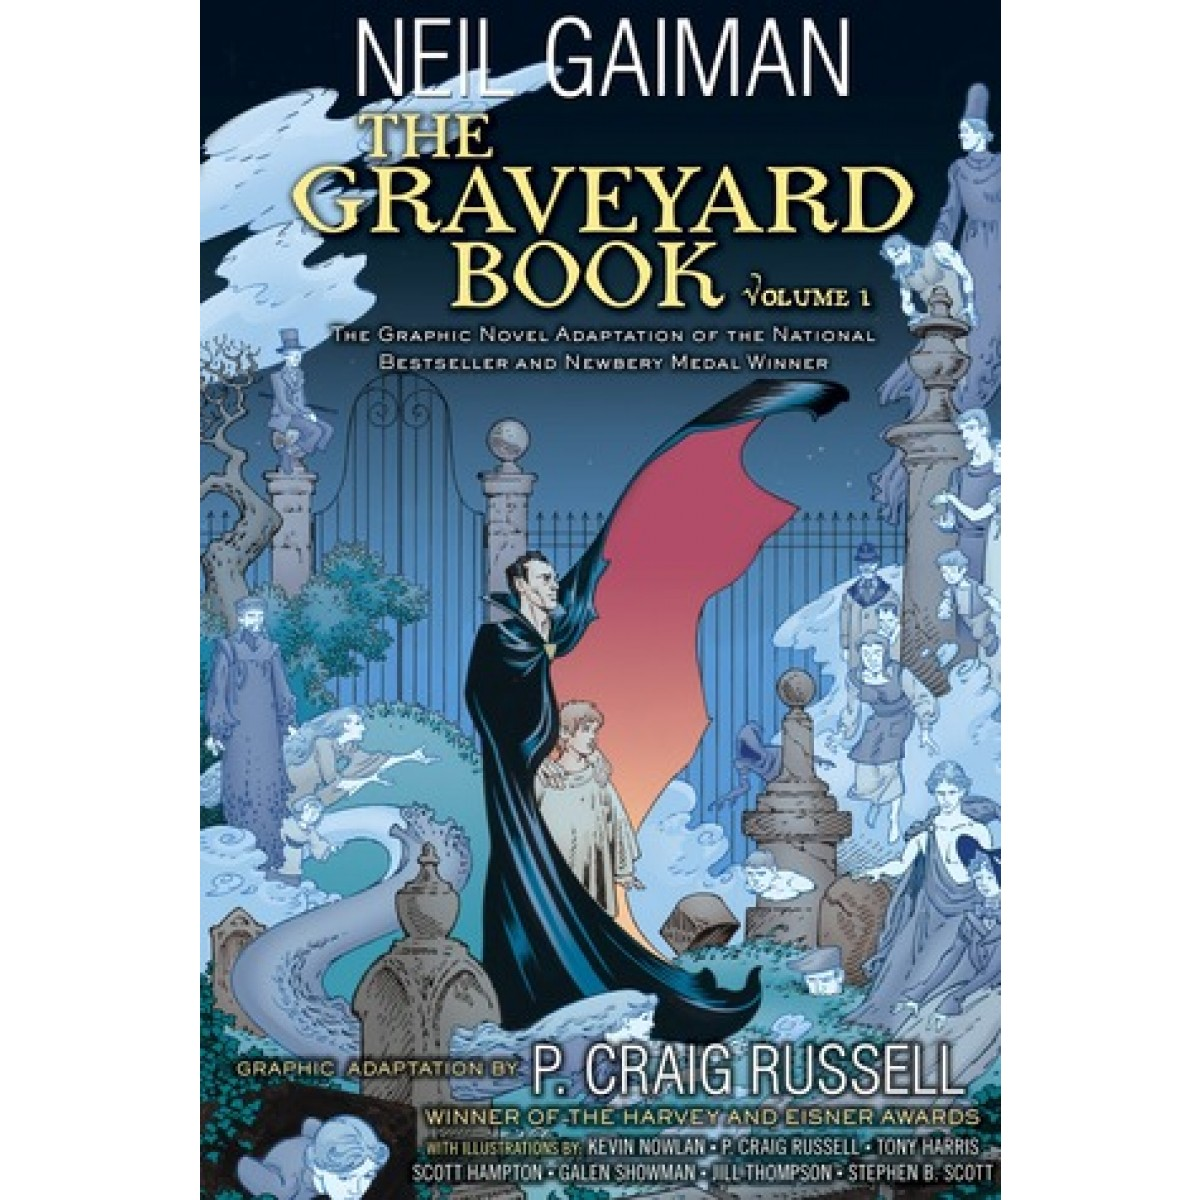 the graveyard book essays Search term papers, college essay examples and free essays on essays24com - full papers database bod, the main character in the graveyard book by neil gaiman, was the only survivor from the murder of his family and was raised by ghosts in a graveyard.